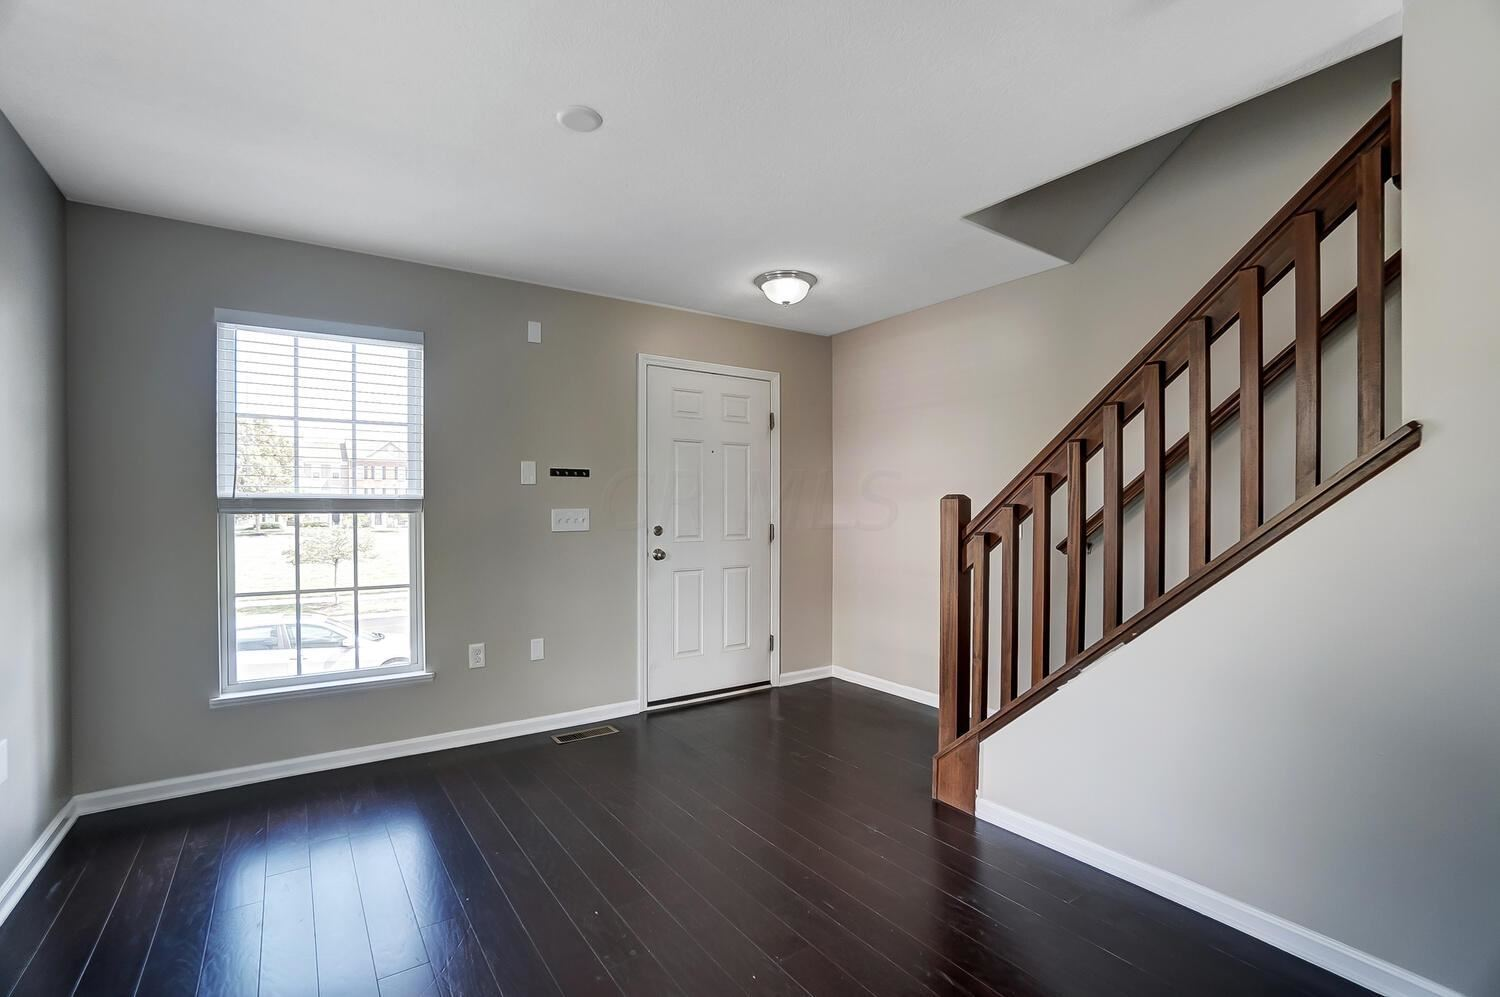 Photo of 5351 Staircase Falls Drive, Dublin, OH 43016 (MLS # 221036643)